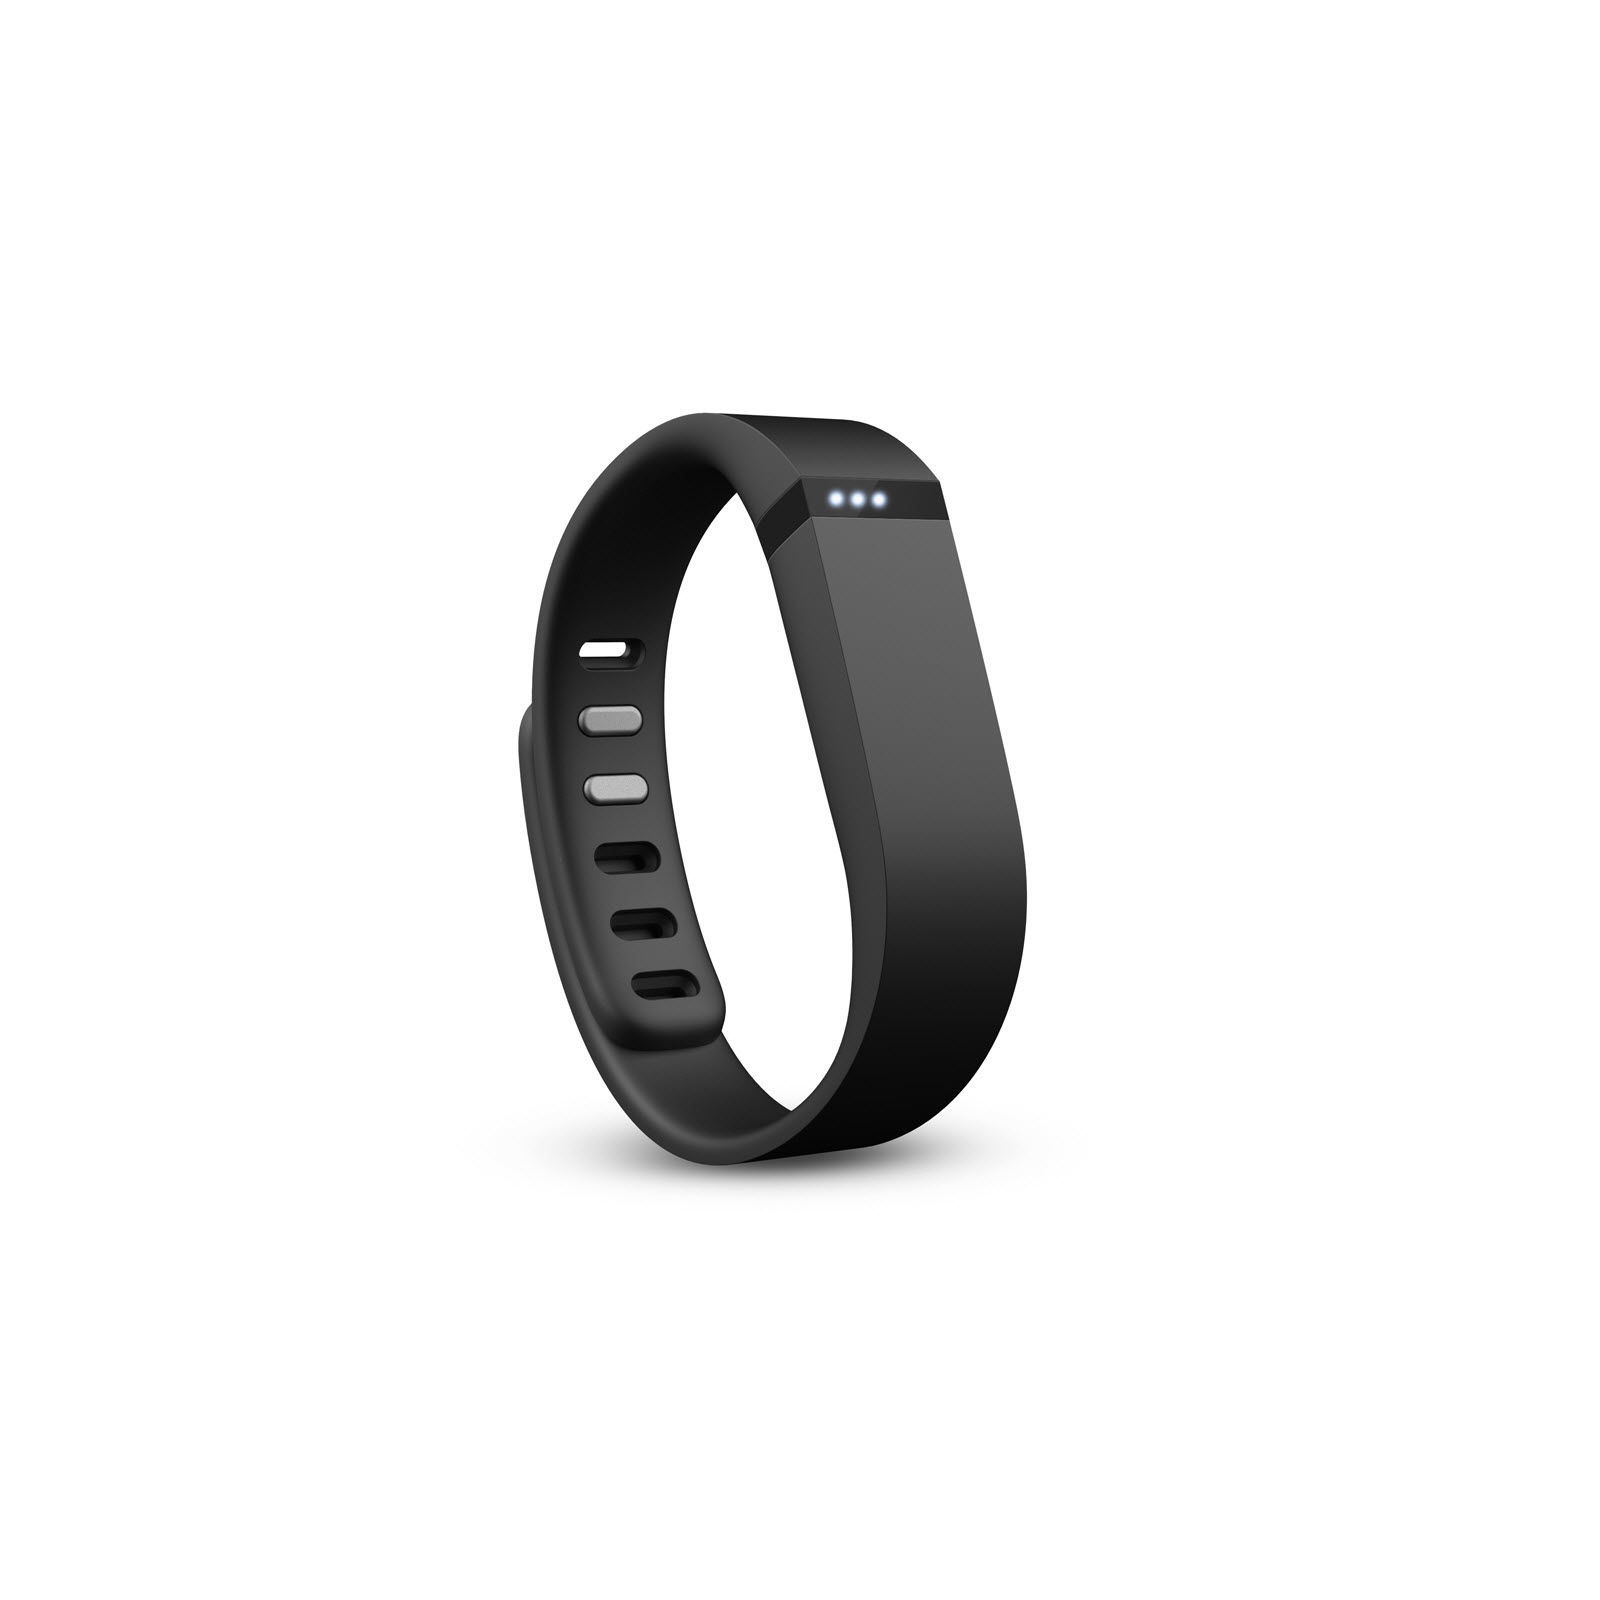 How do i hook up my fitbit flex